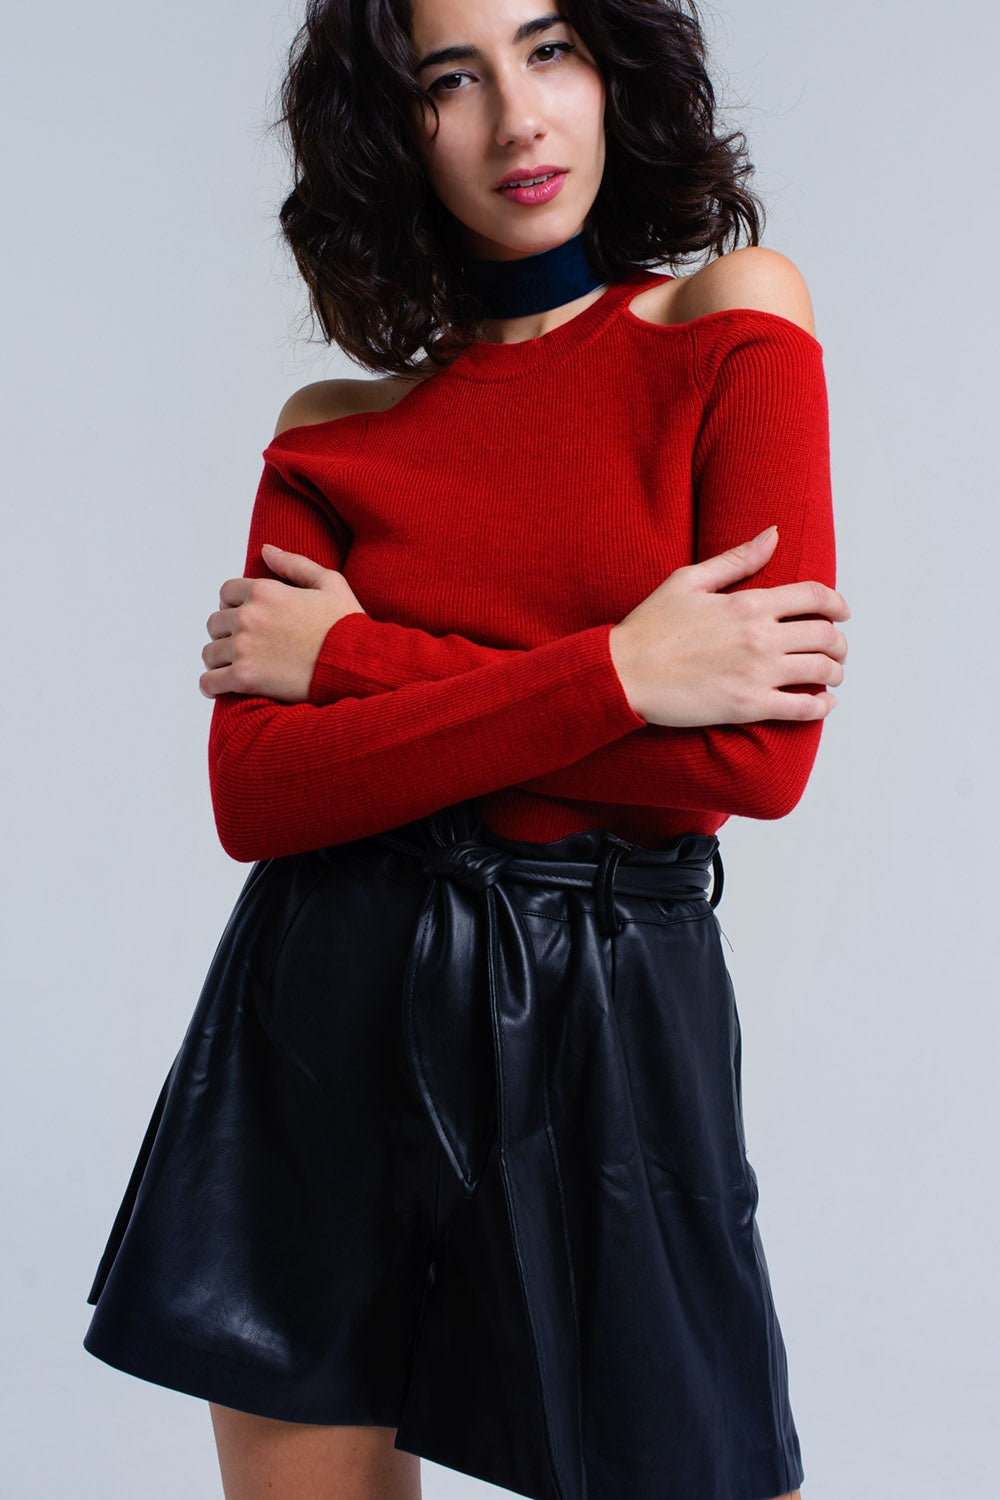 Red sweater with cold shoulder